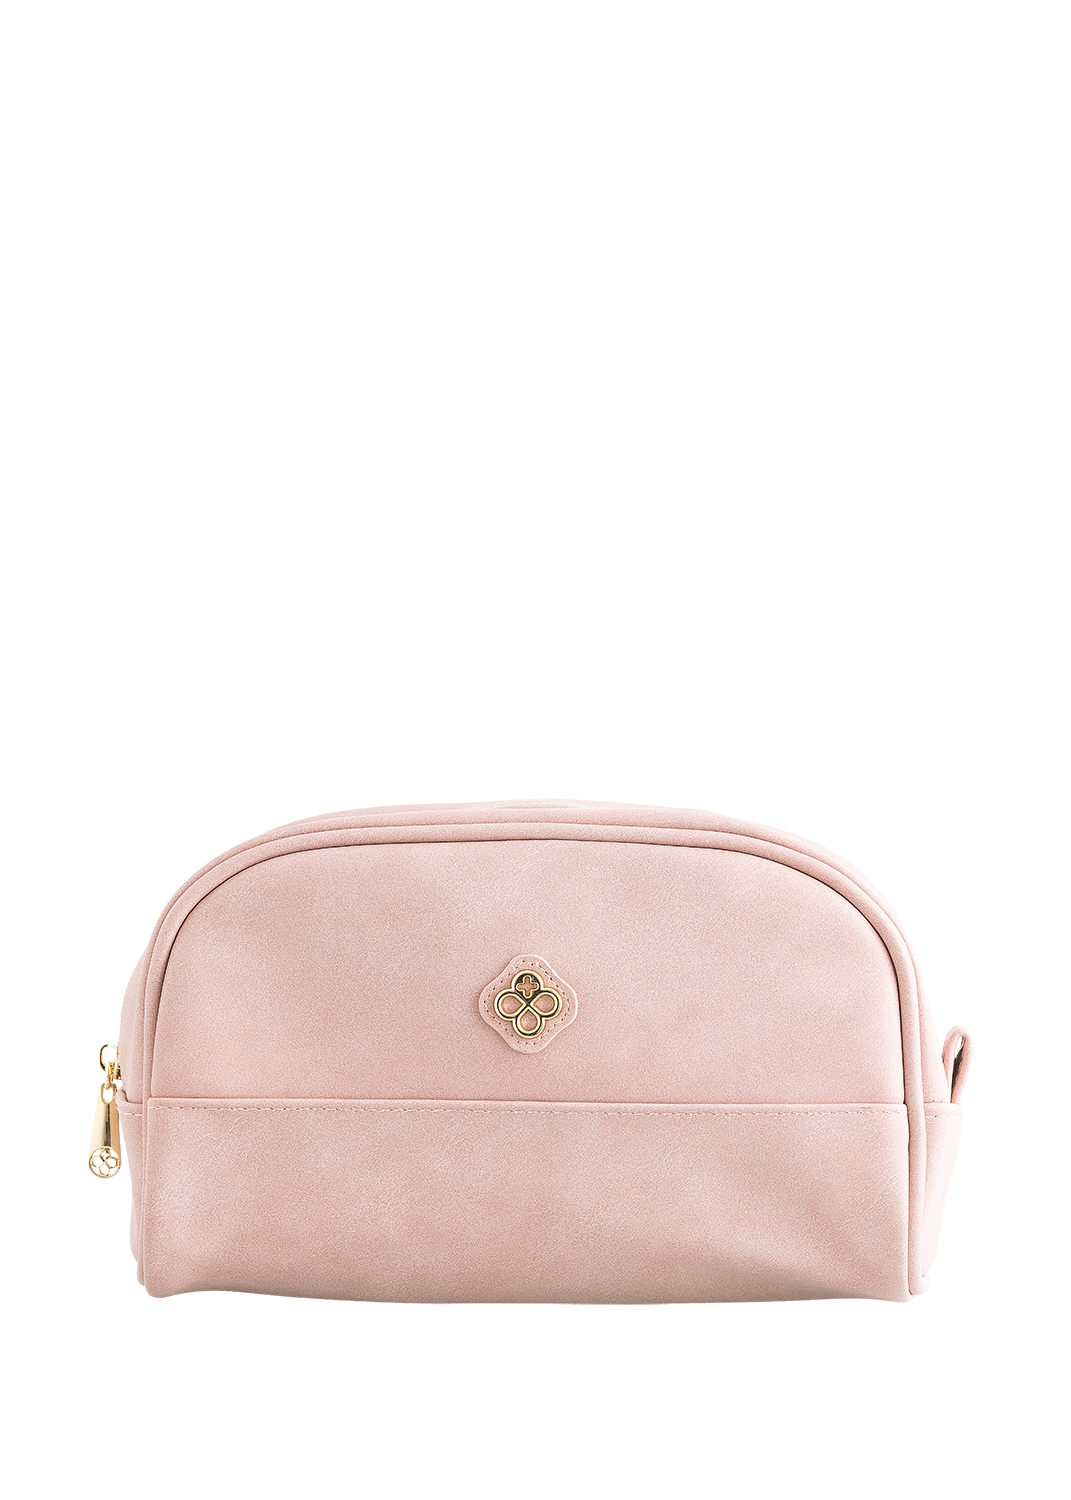 JI 004 BLUSH A - PNG copia